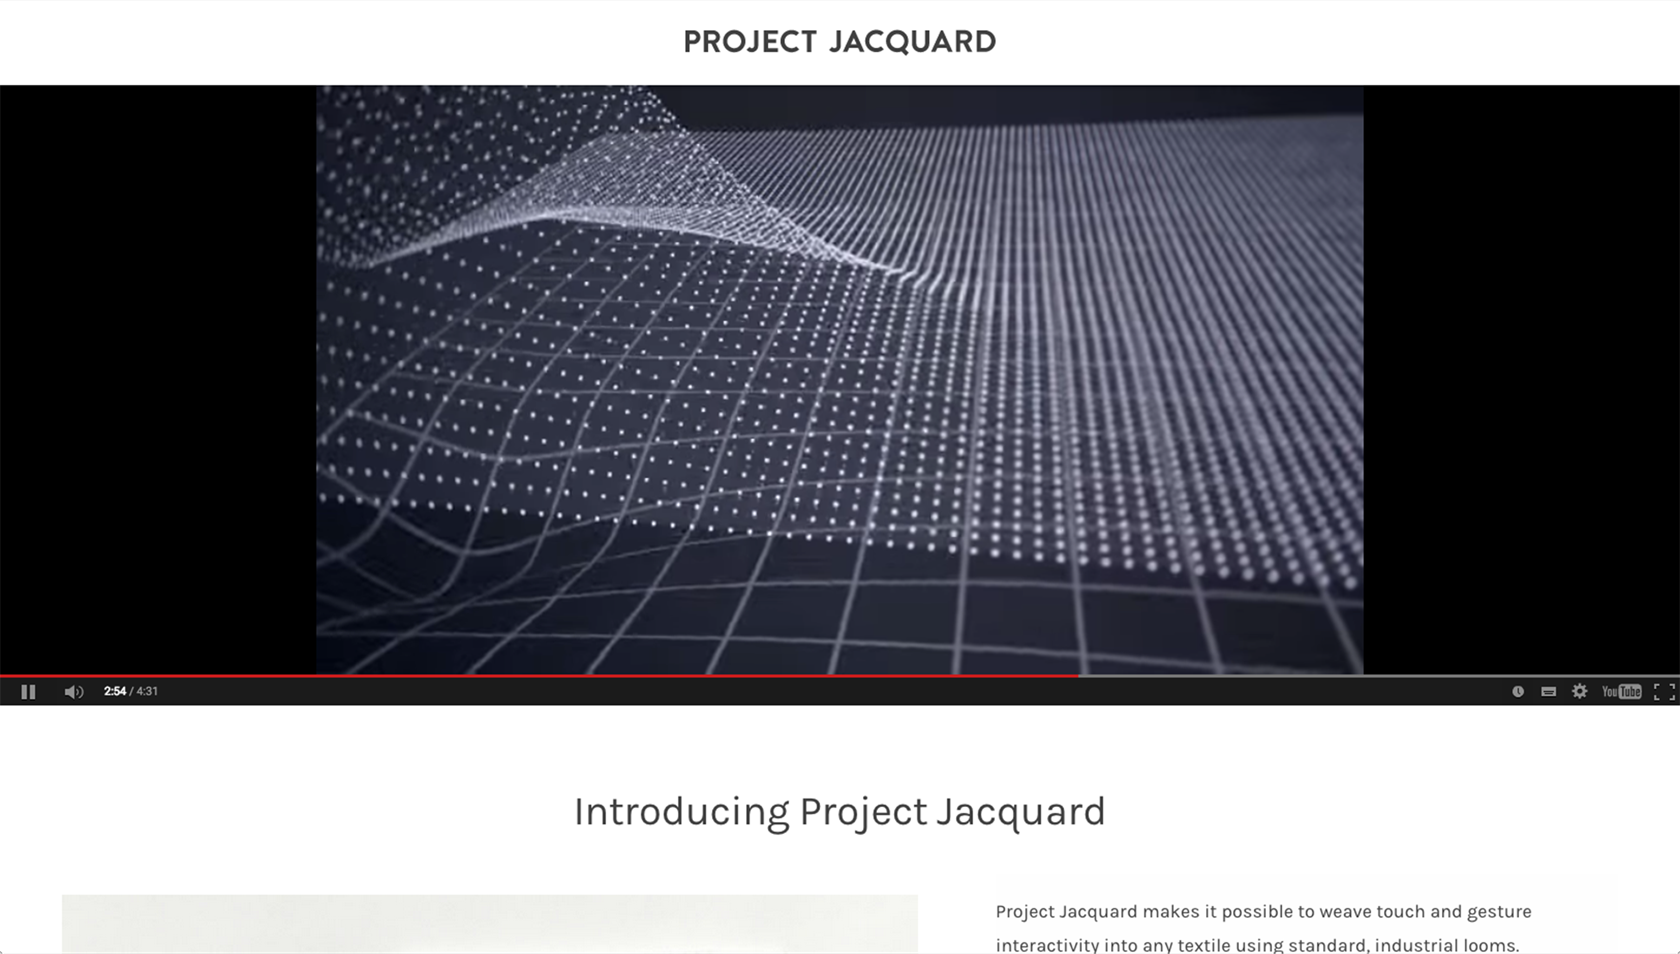 Google ATAP - Project Jacquard